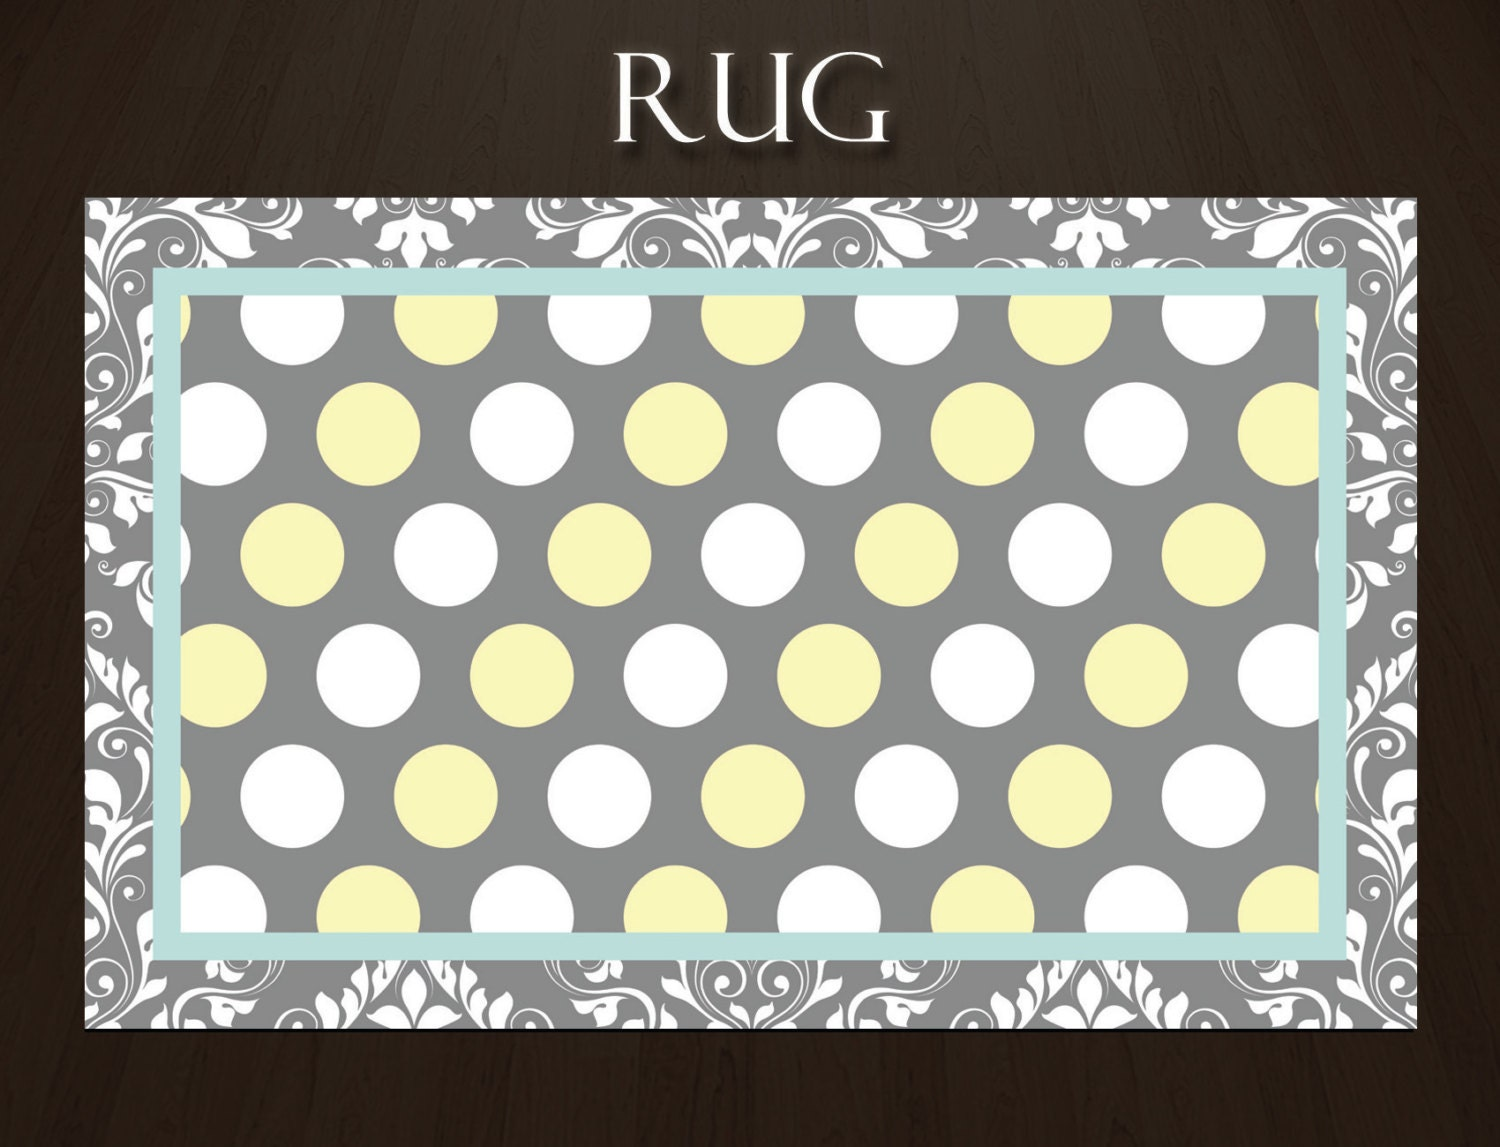 teal rugs area rugs polka dot rug by eloquentinnovations